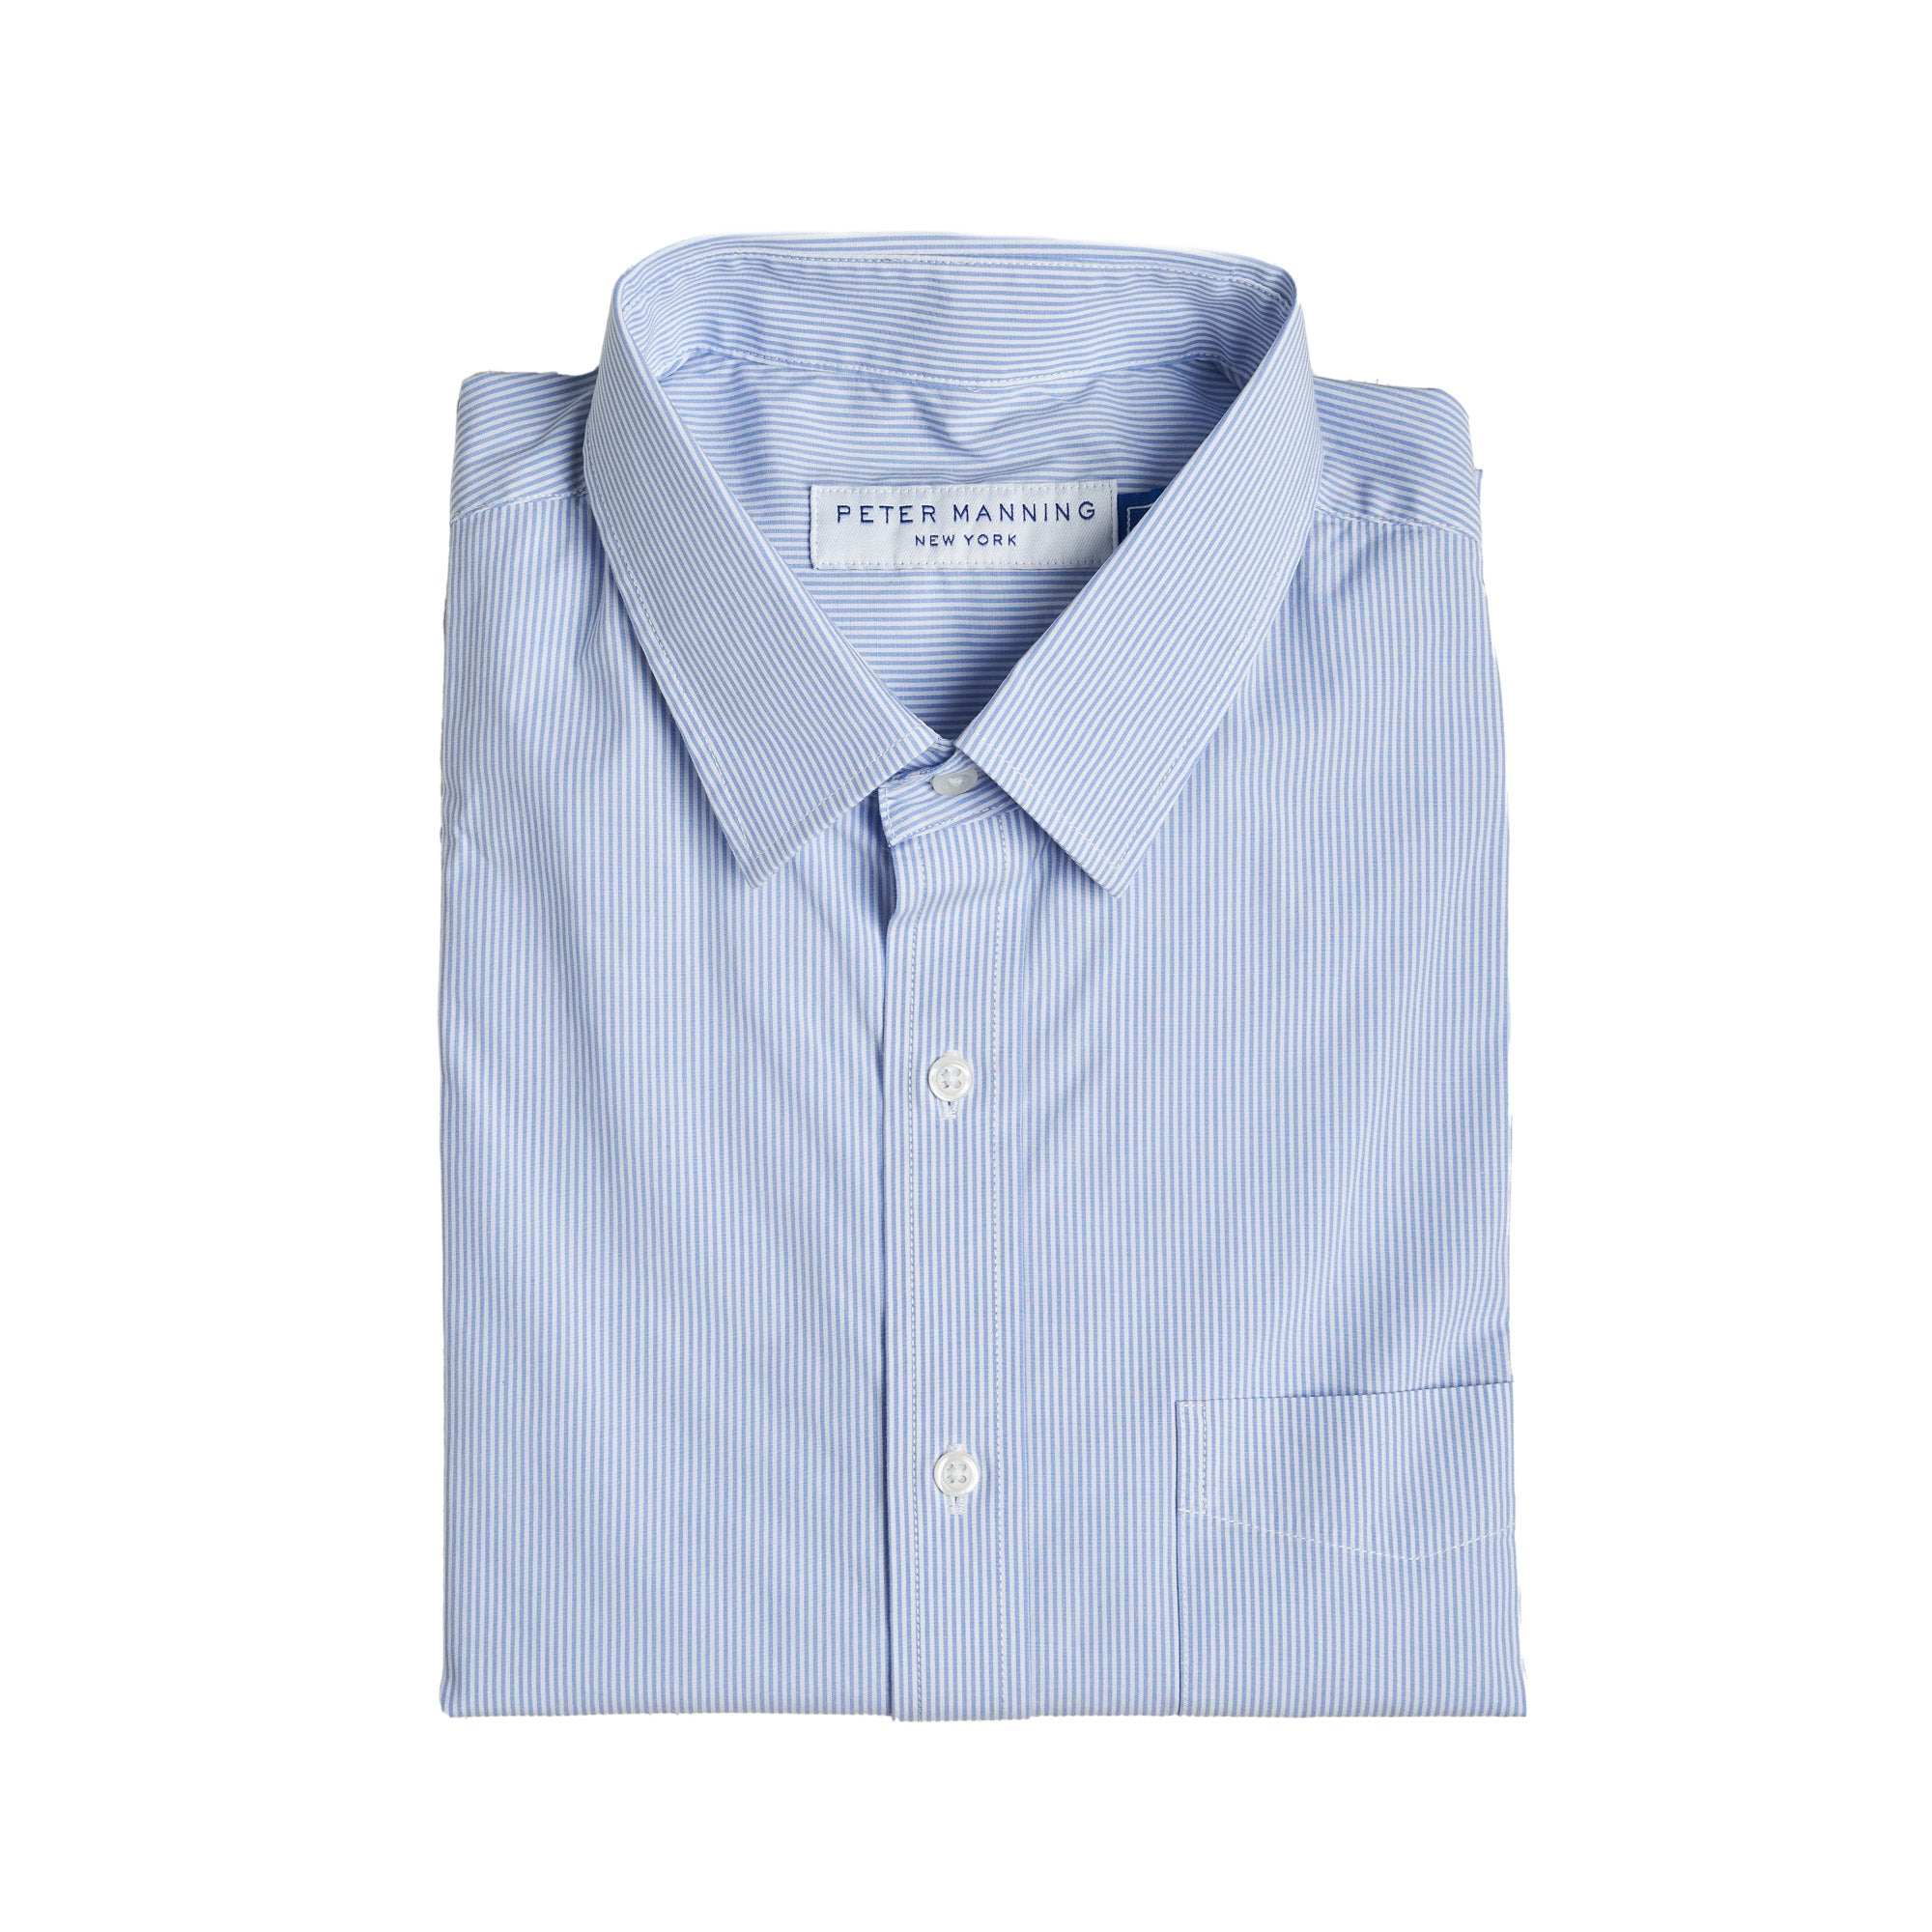 Everyday Stretch Shirts - Blue Pinstripe